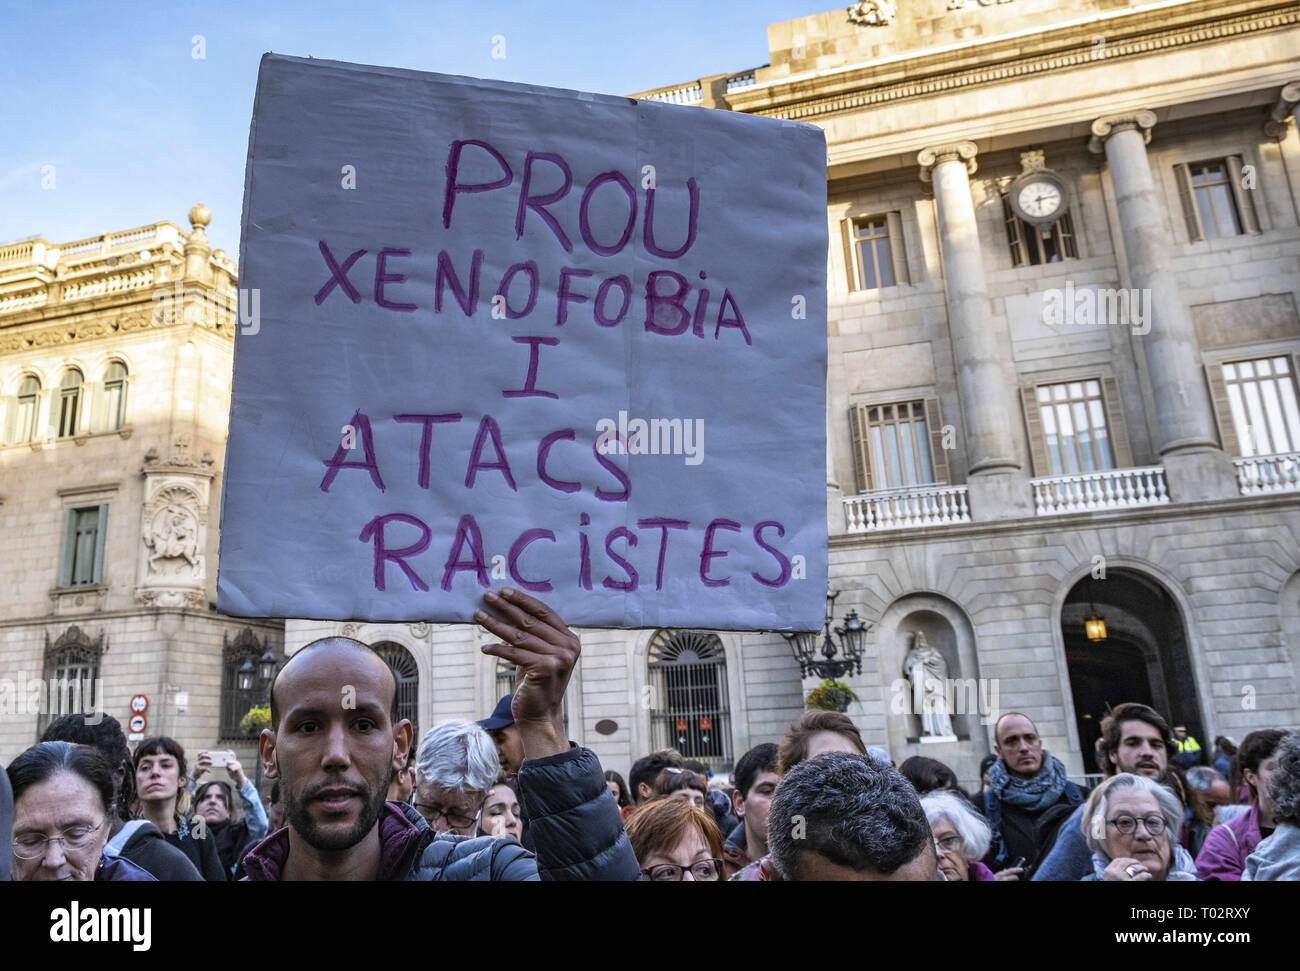 Barcelona, Catalonia, Spain. 16th Mar, 2019. A placard is seen showing a sign saying Enough of xenophobia and racist attacks.Around 300 people have gather to condemn the racism and discrimination after a racist attack carried out to a house of a young migrant after a fight between young migrants and young residents in Castelldefels area in Barcelona. Credit: Paco Freire/SOPA Images/ZUMA Wire/Alamy Live News - Stock Image